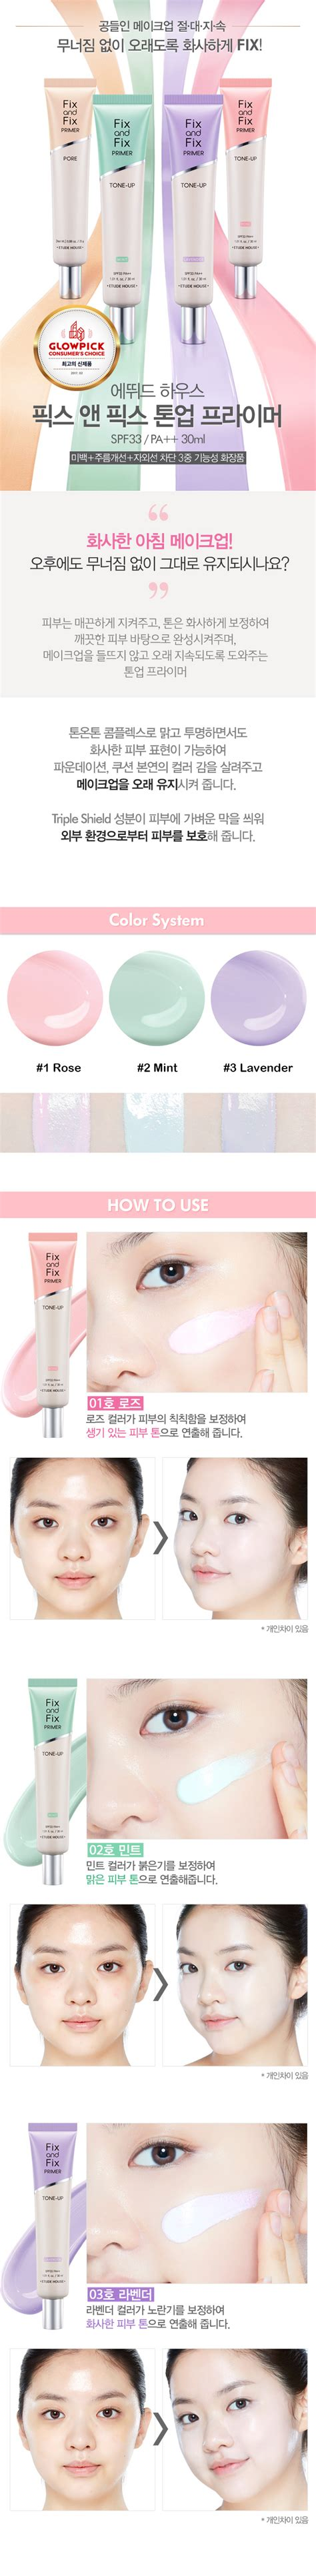 Etude Fix And Fix Primer etude house fix and fix primer spf33 pa 30ml ebay